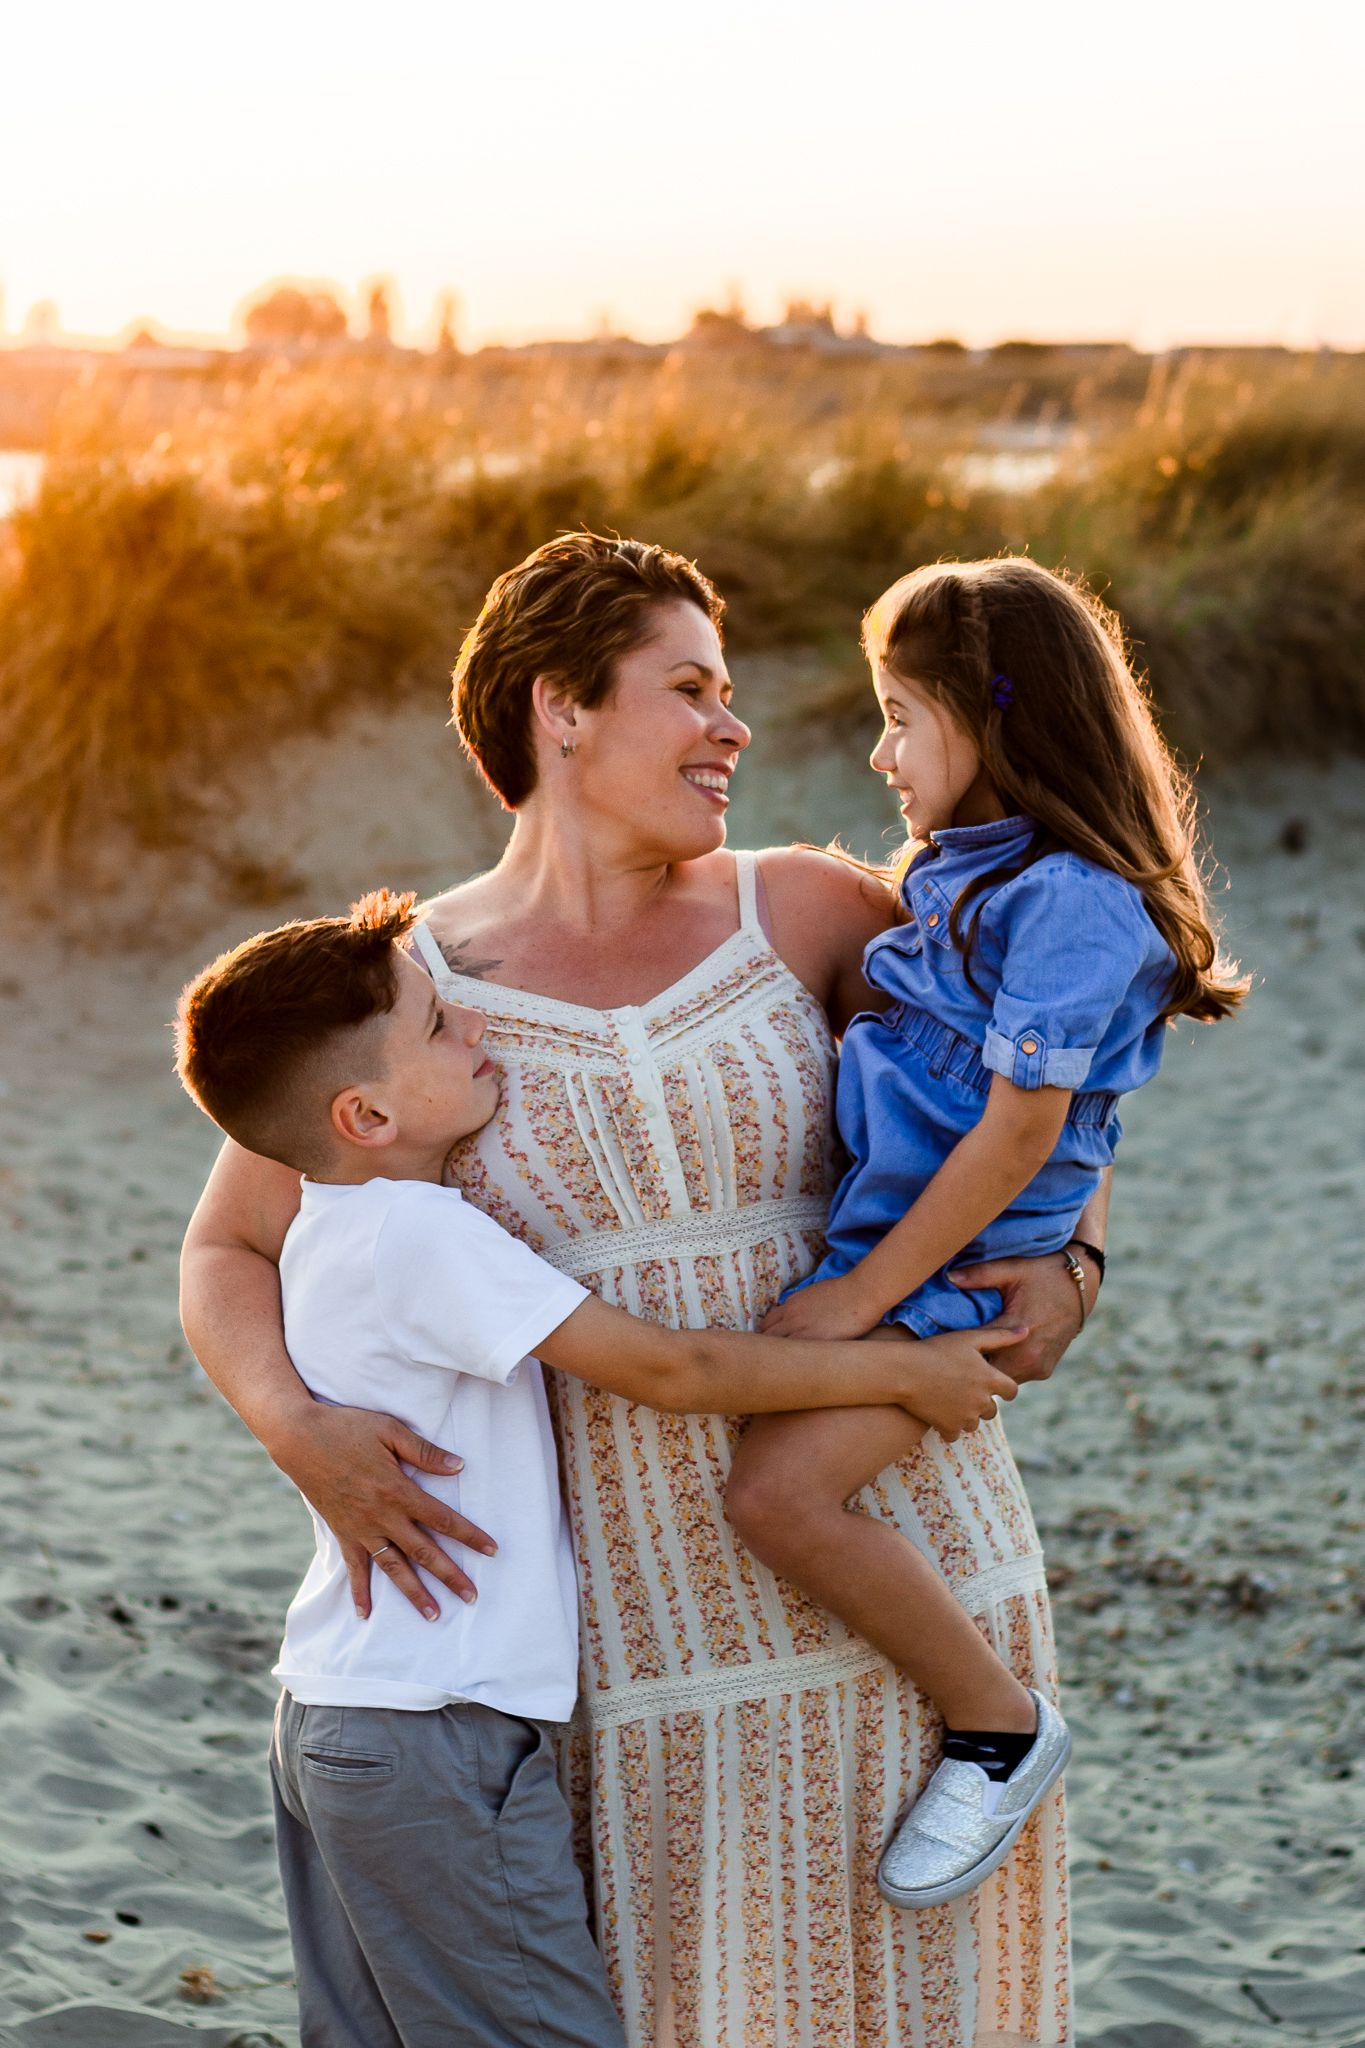 On a beach on Hayling Island a Mum smiles lovingly at her Son and Daughter while the Sun sets behind them.